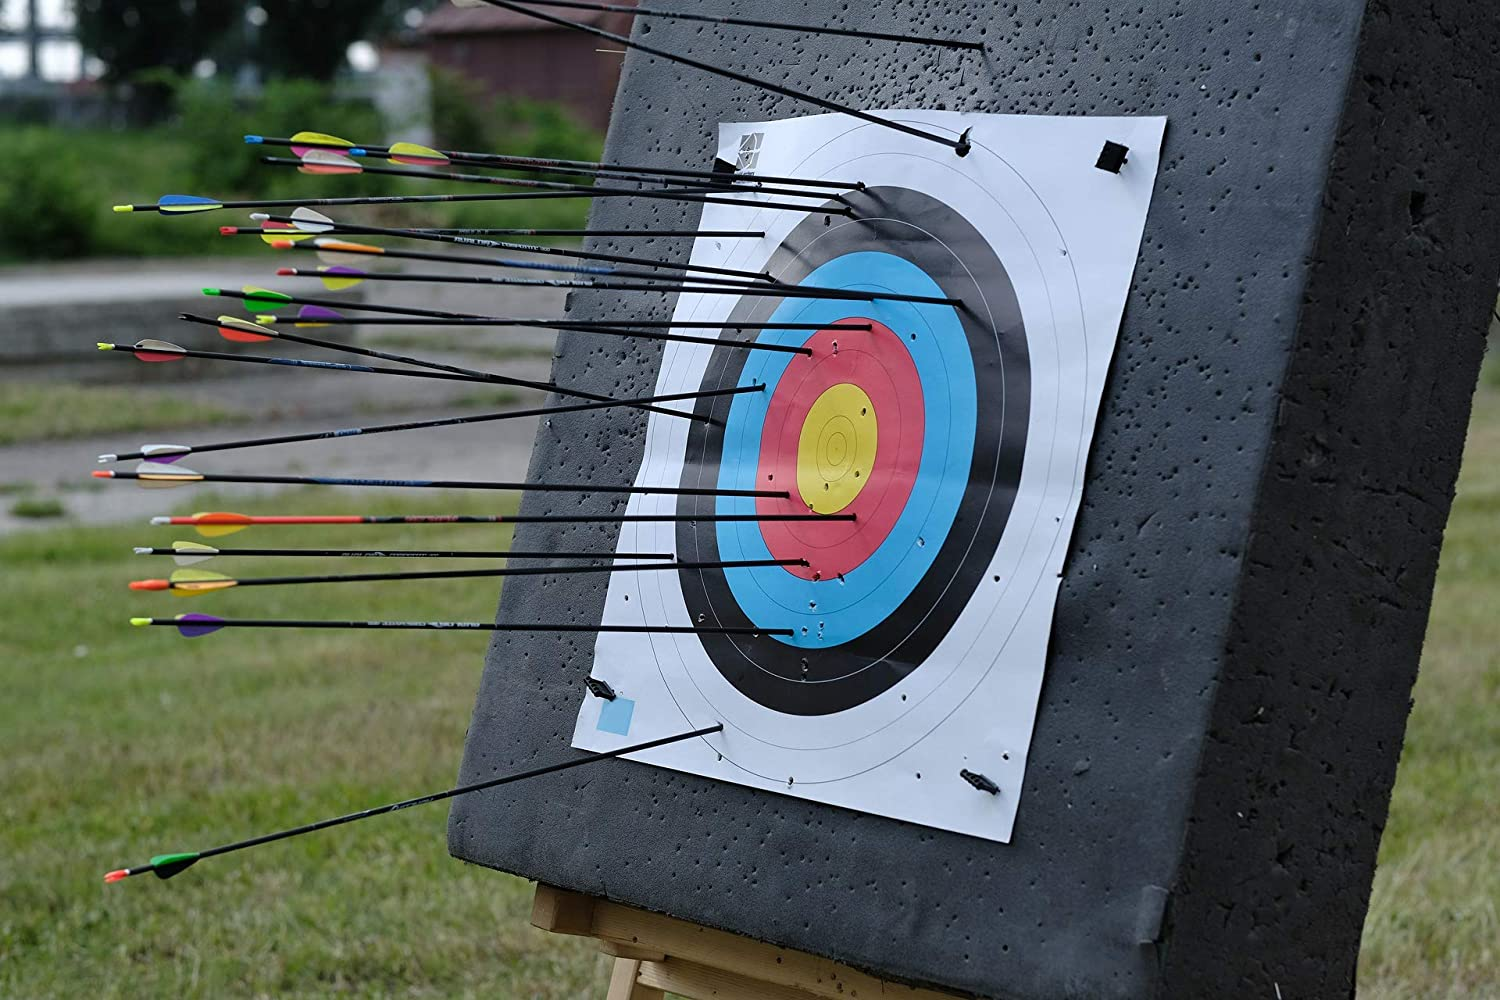 KHAMPA Archery Target for Backyard | 2x2 ft. Deluxe Double Layer Bow Target | Includes 2 Paper Targets and Push Pins for Crossbow or Compound Bows